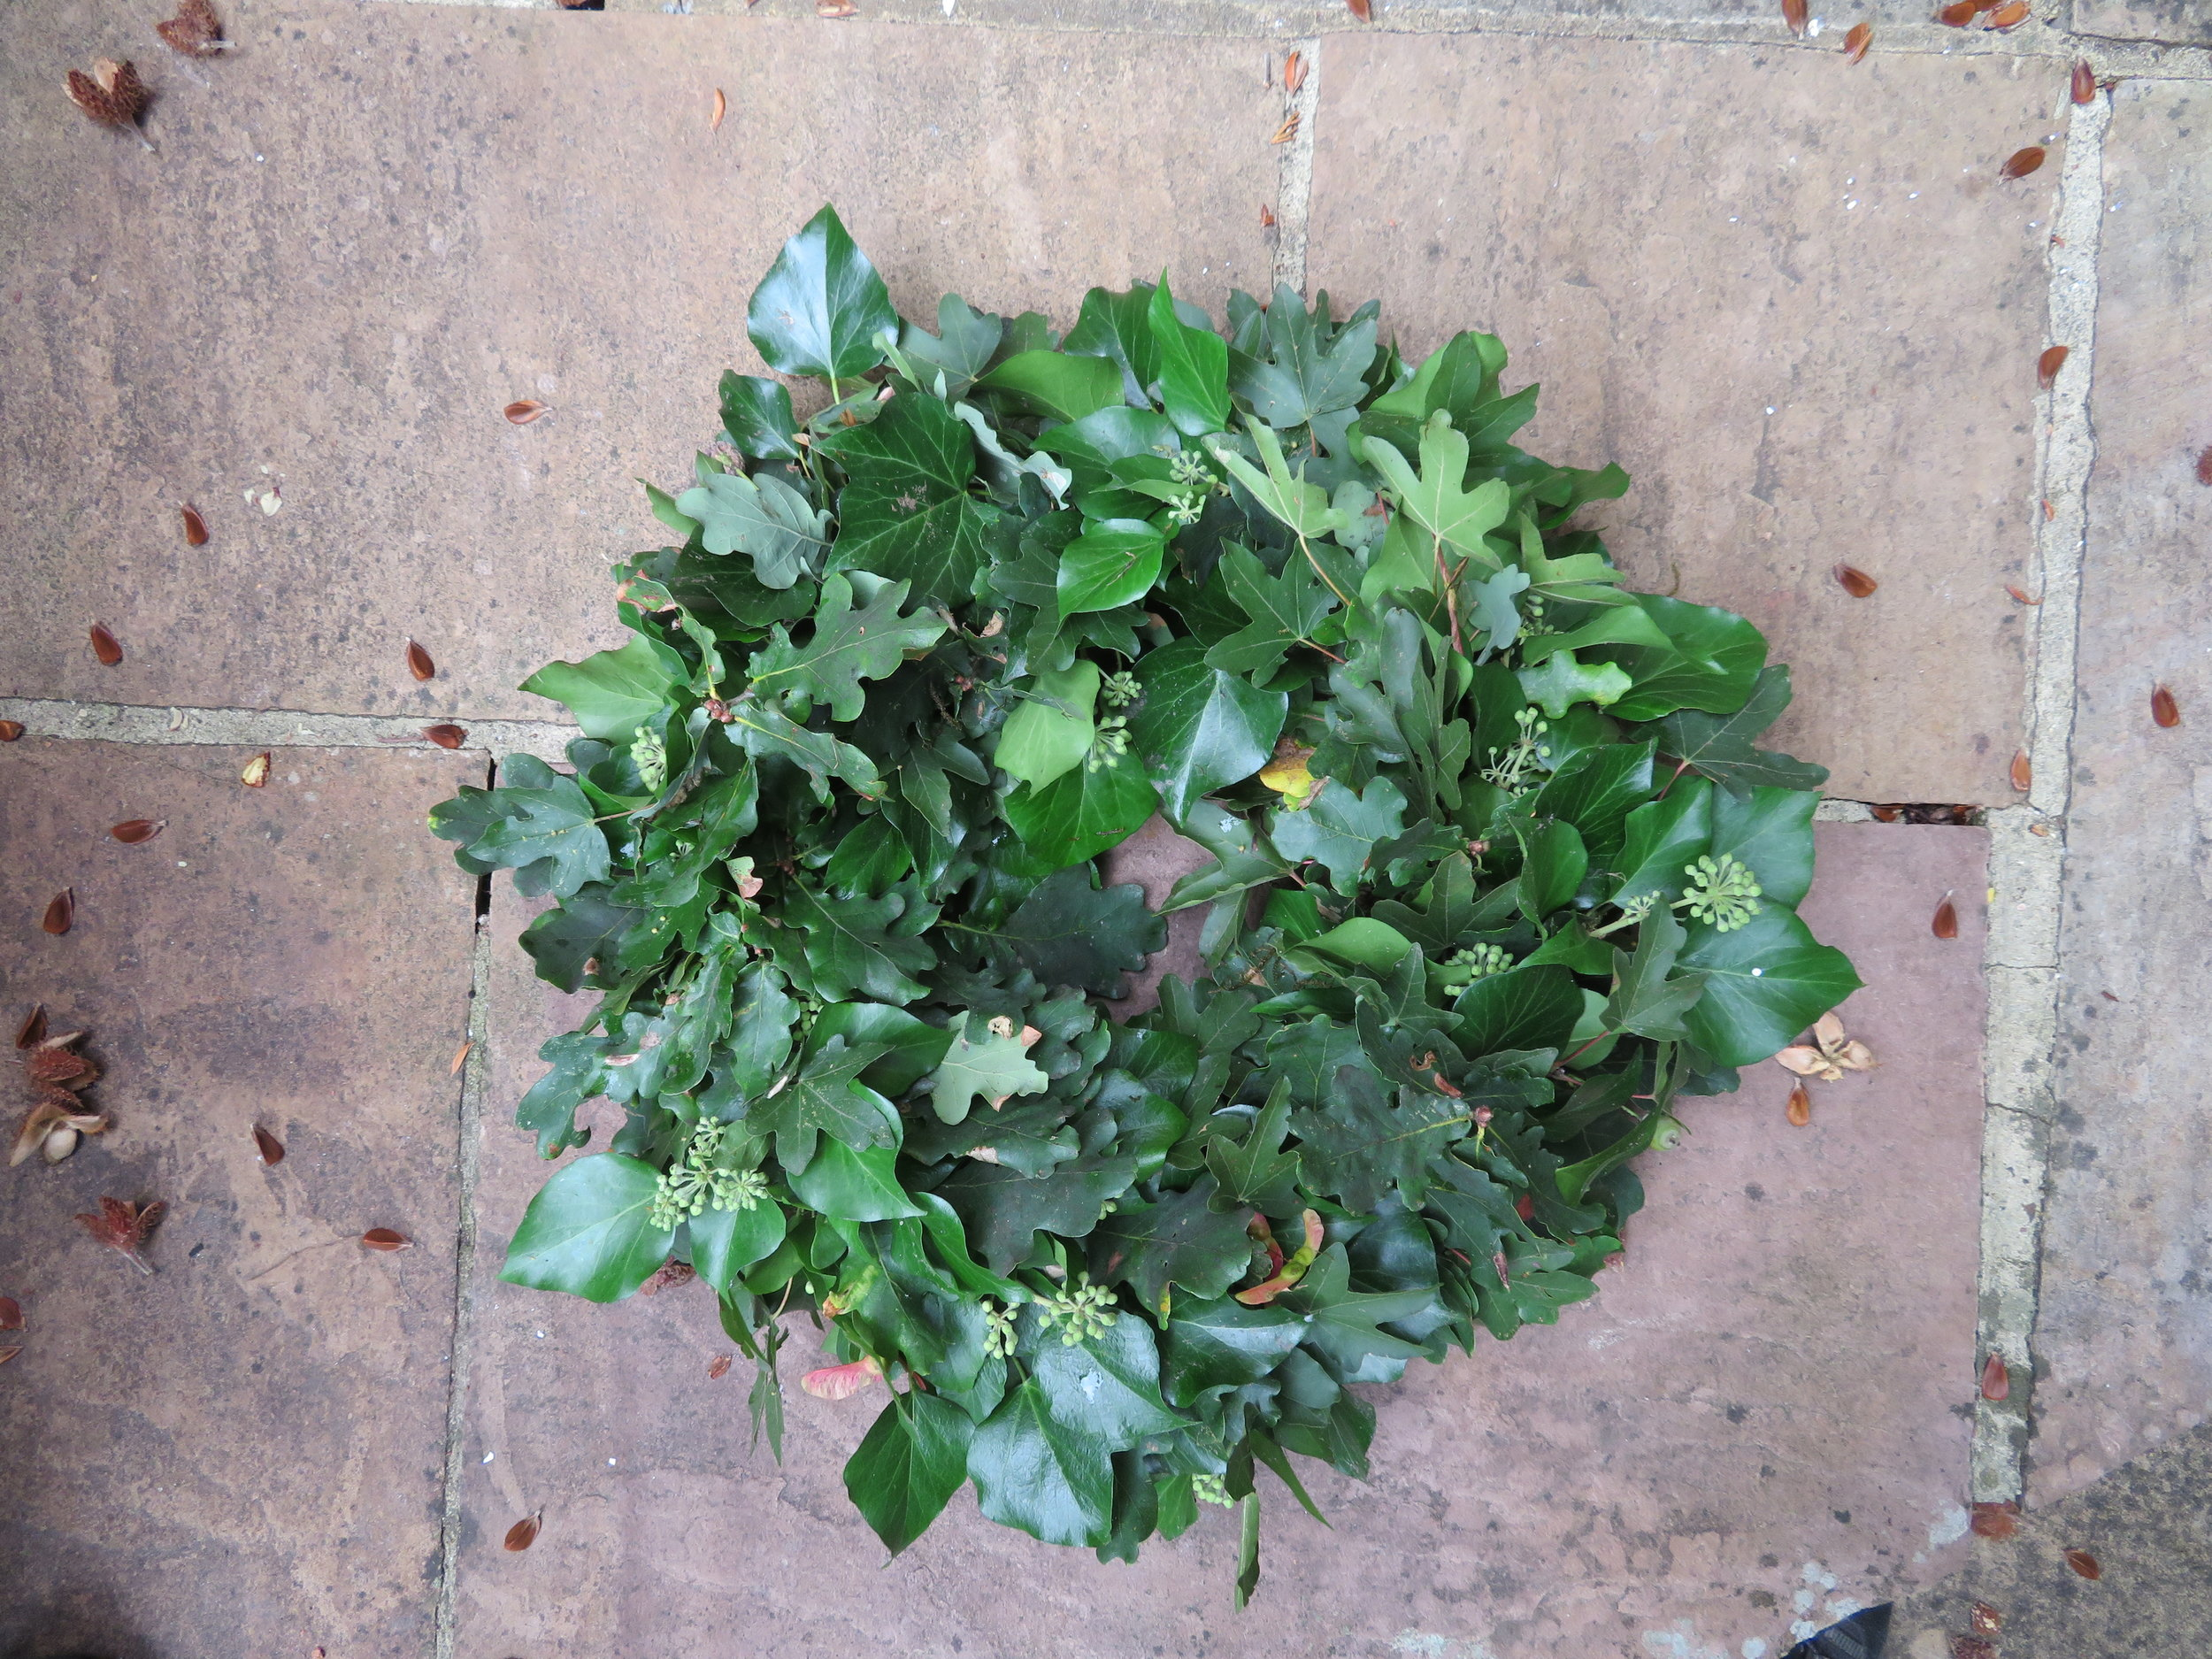 Autumnal foliage covers the moss and provides the 3D shape for the wreath